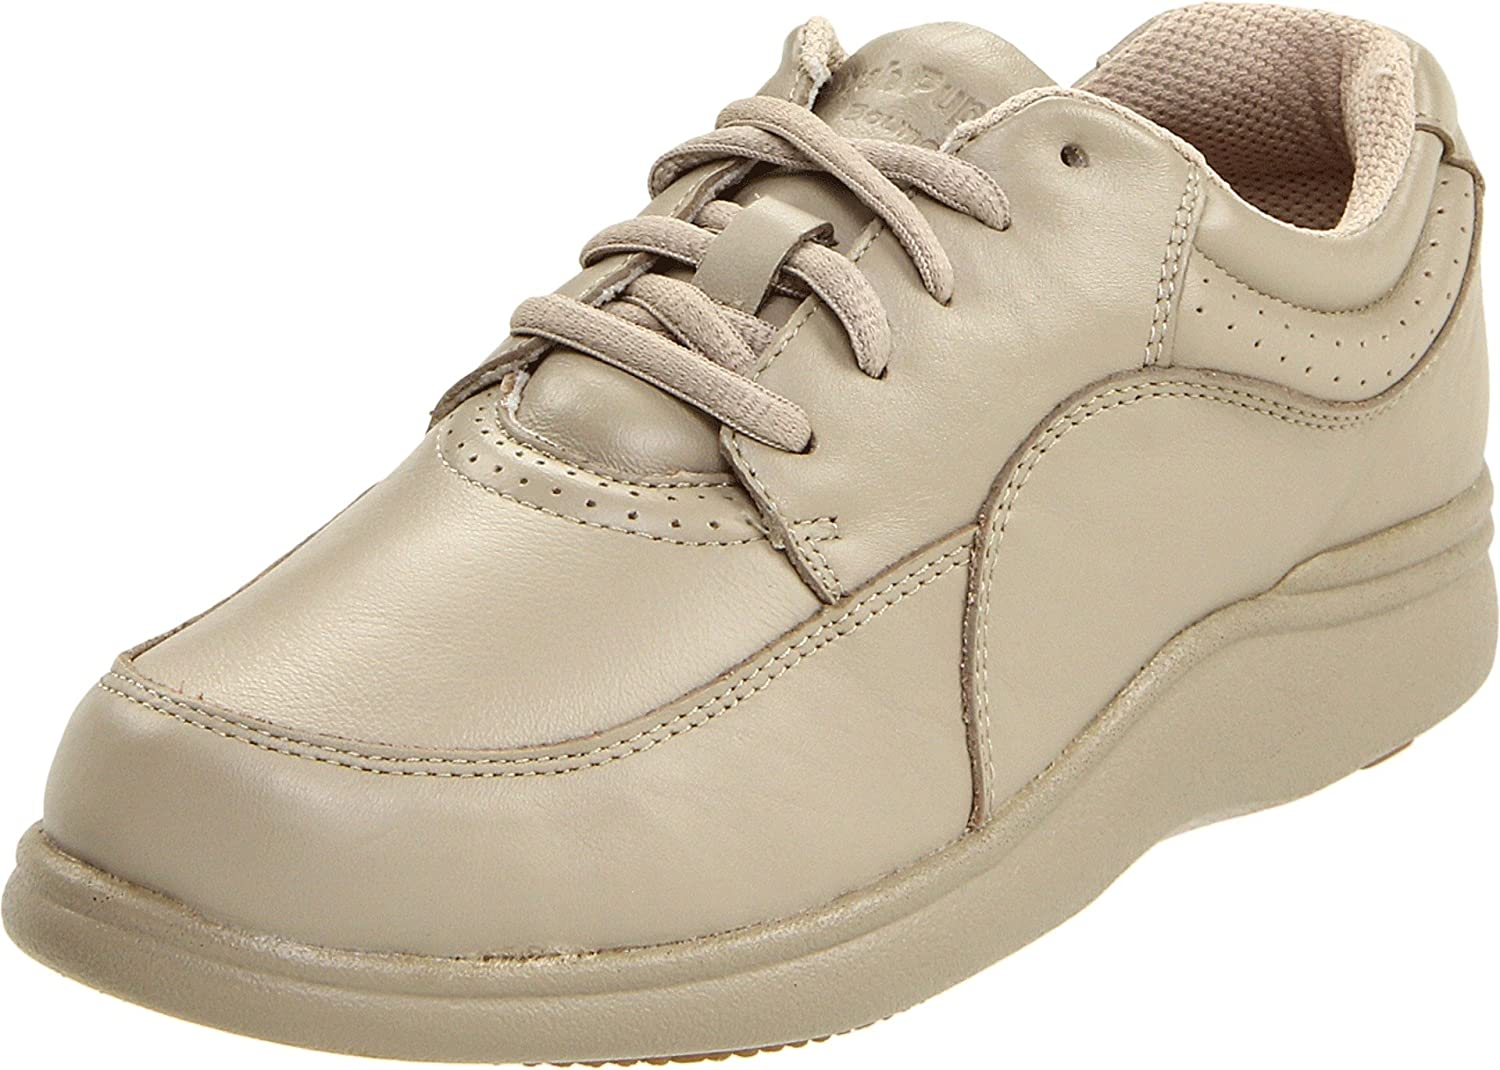 Hush Puppies Women's Power Walker Sneaker B001AWYDPK 8.5 W US|Taupe